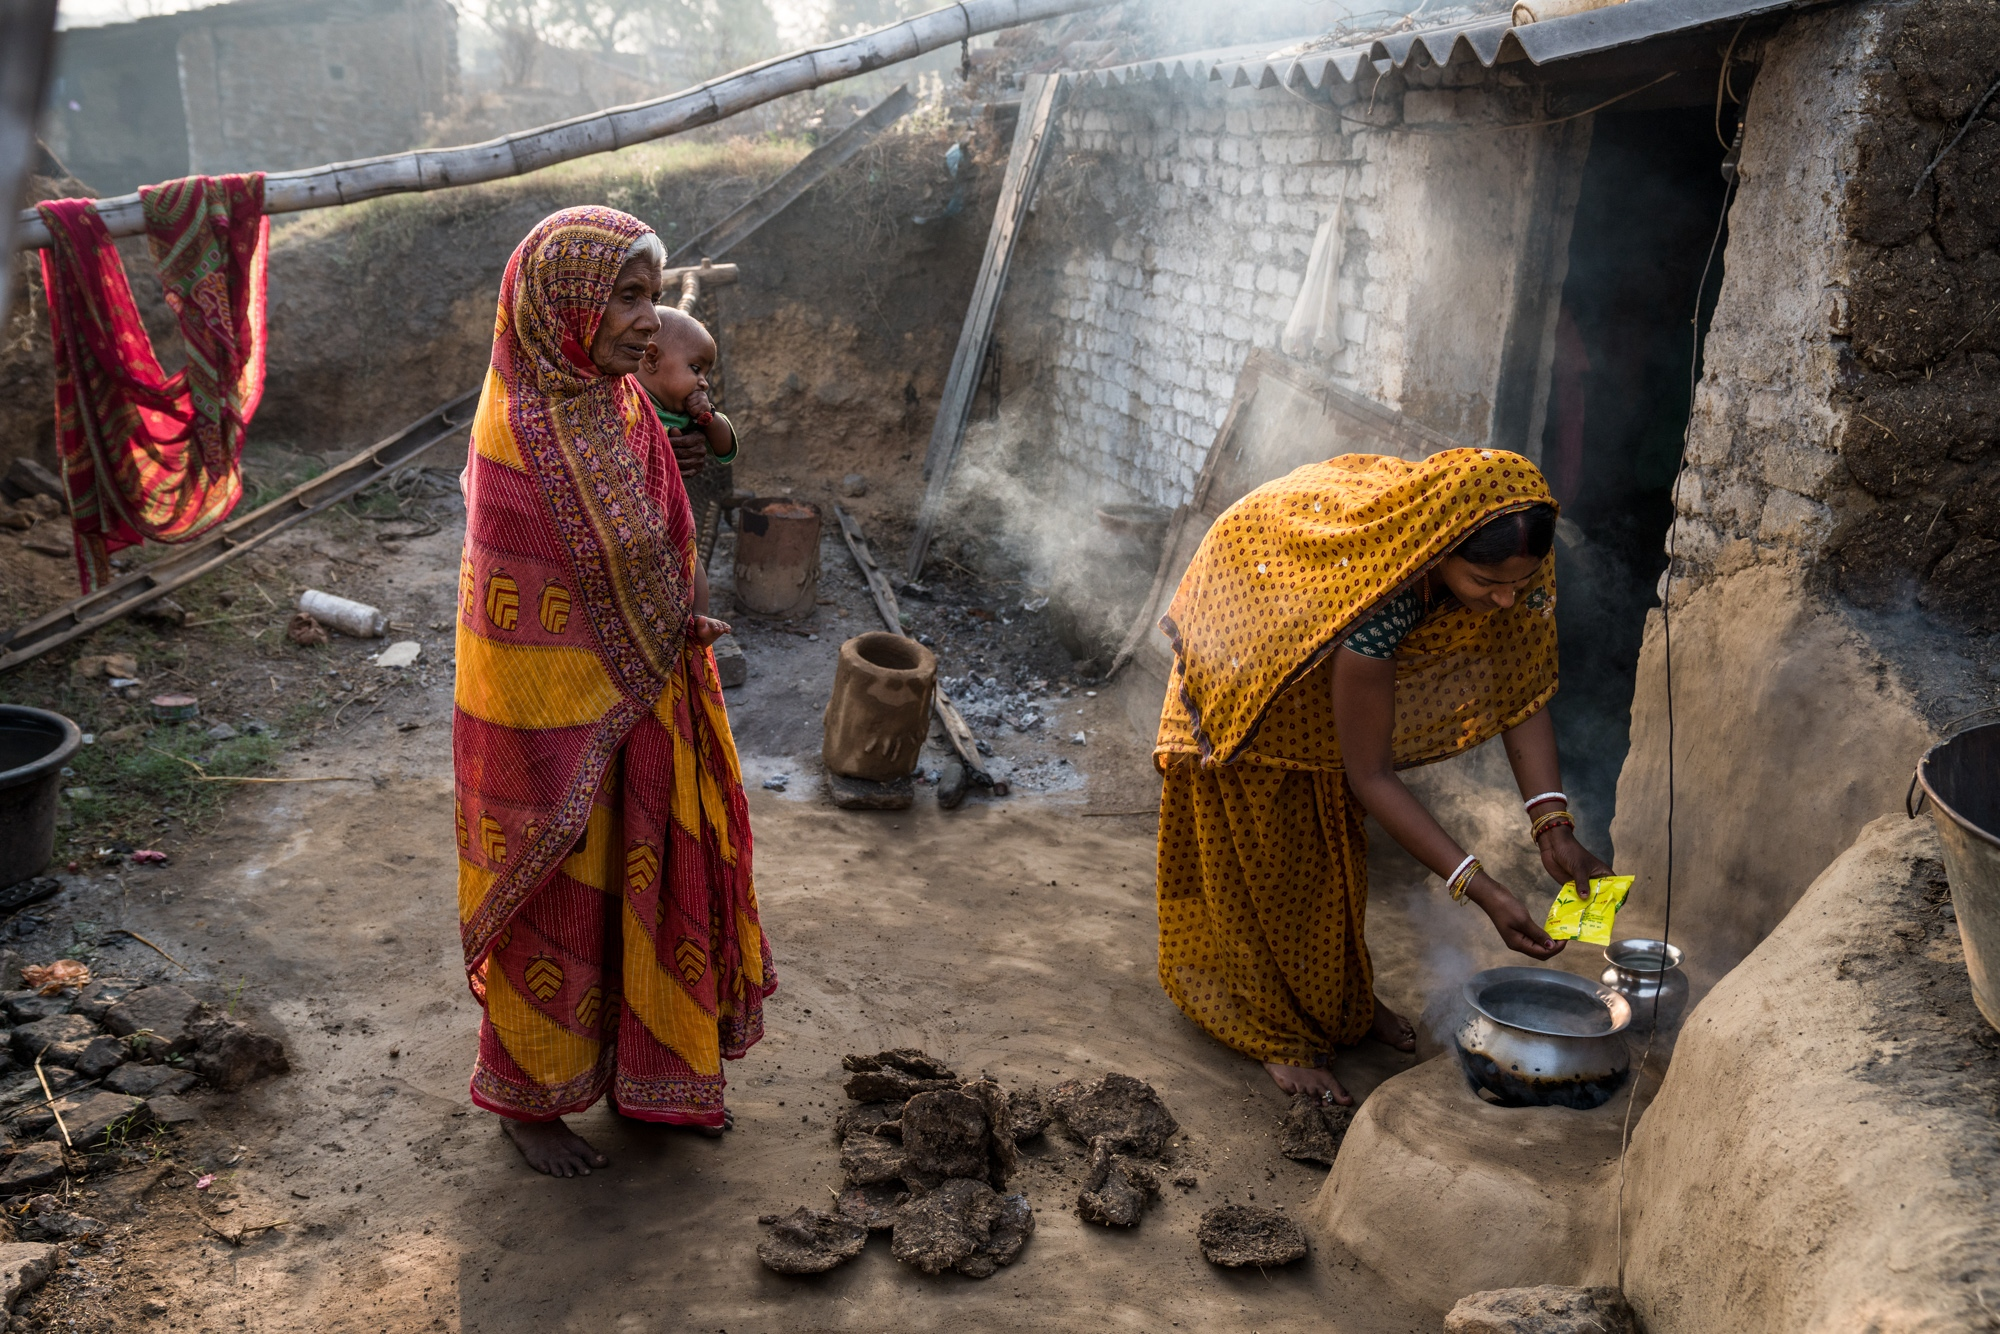 Grandmother and her grandson look on as the mother prepares a boiled breakfast using dung cakes in Jharkhand, India.